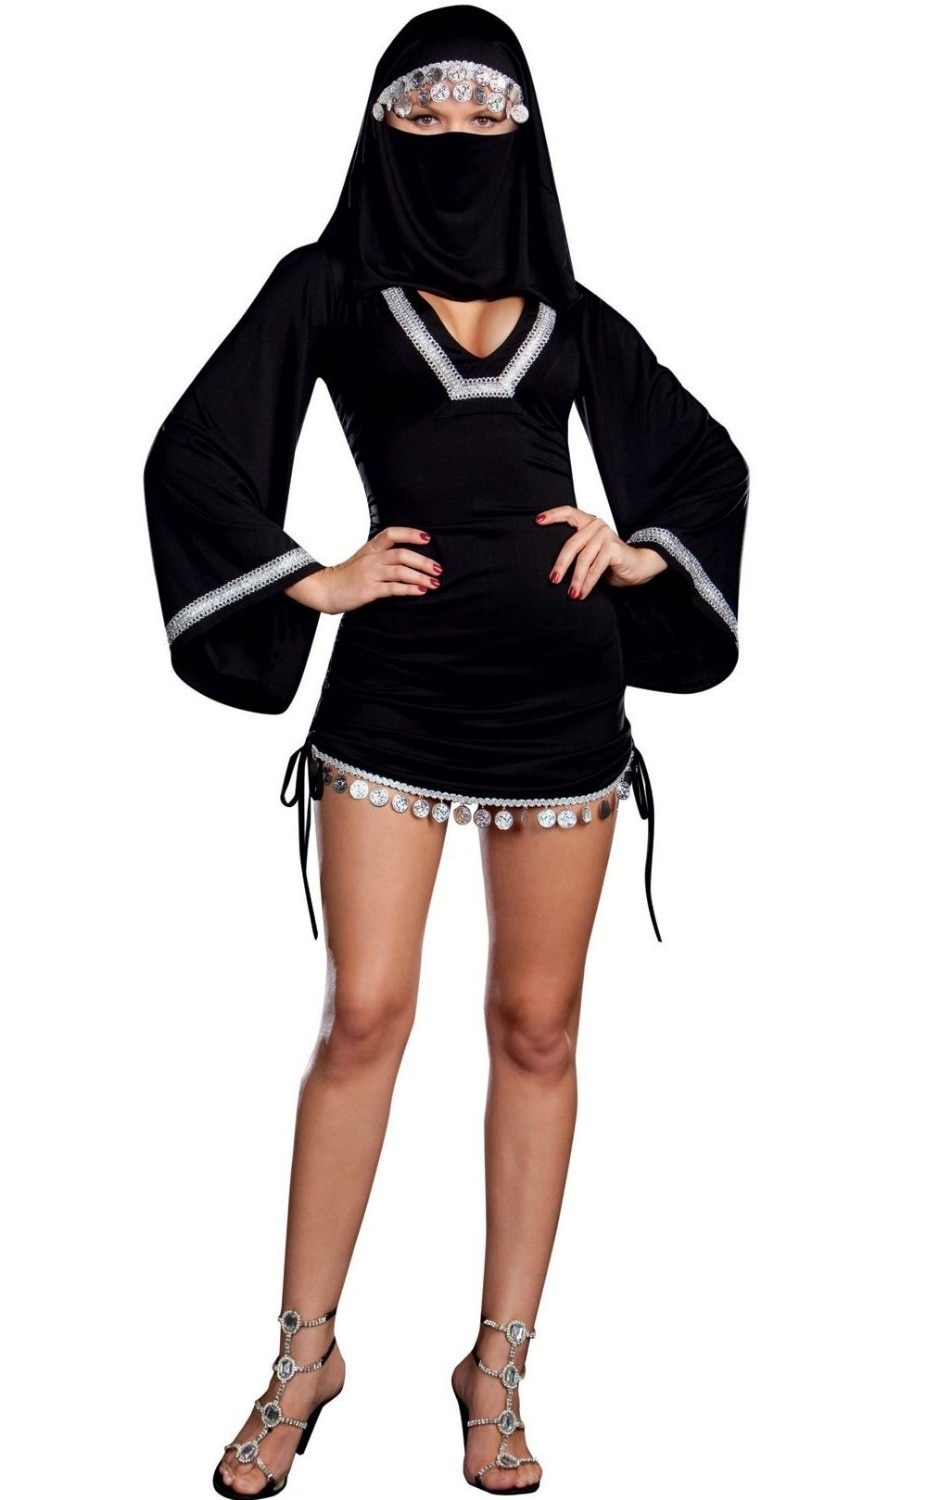 Extreme Sexy Costumes Free Shipping New Sexy Burka Costume 3S1208 Halloween Ninja Costumes For Women